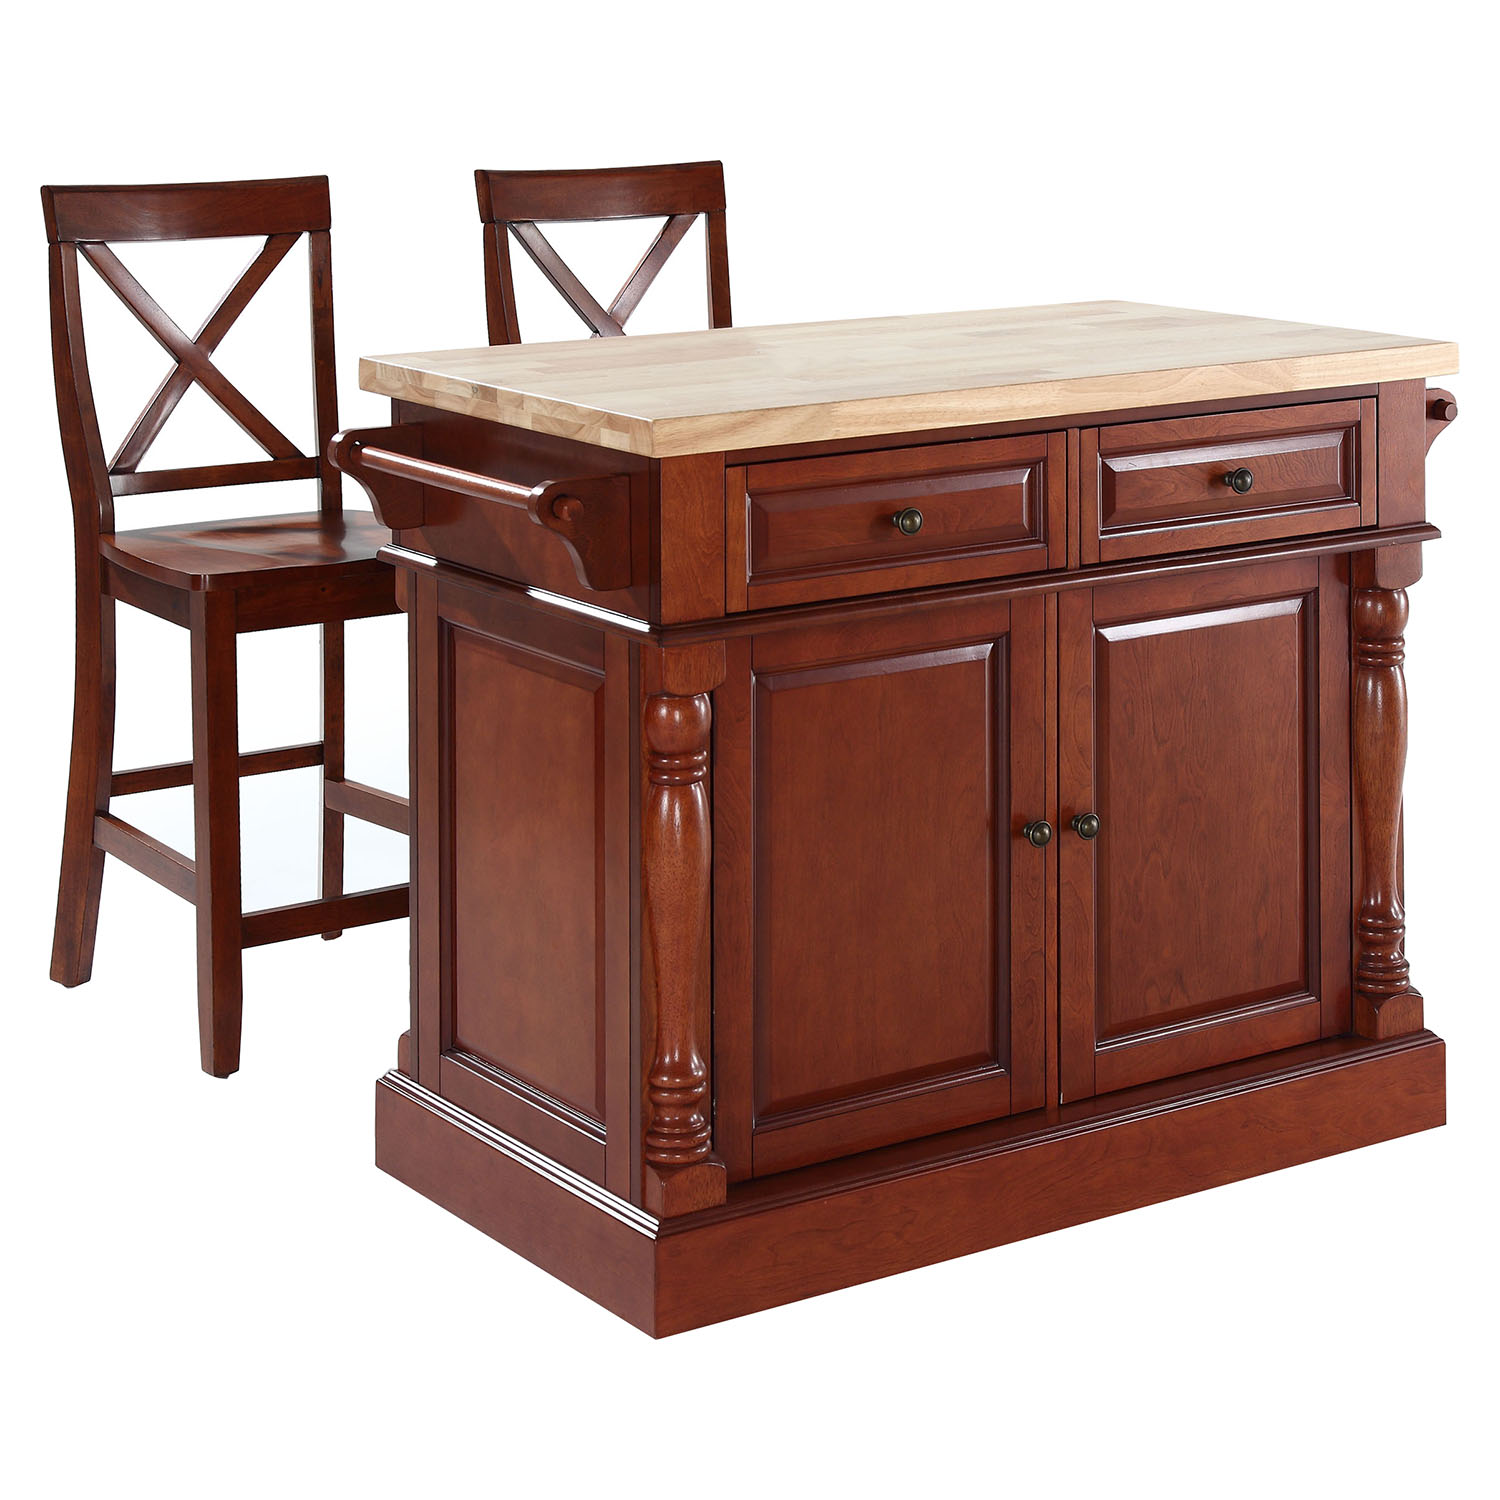 Butcher Block Top Kitchen Island with X-Back Stools - Cherry - CROS-KF300063CH